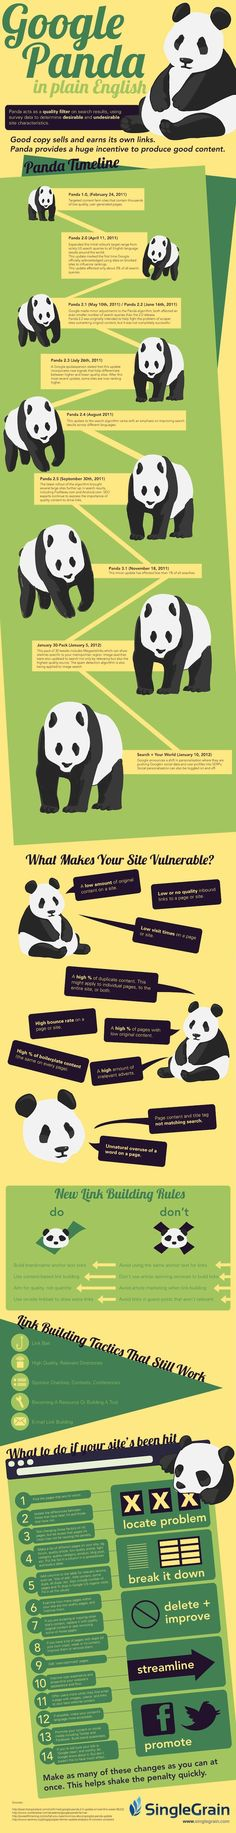 There are so many myths out there about Panda and what it means. This infographic from Single Grain makes it very easy for you to understand what Panda Marketing Digital, Seo Marketing, Content Marketing, Internet Marketing, Online Marketing, Social Media Marketing, Mobile Marketing, Social Networks, Web 2.0